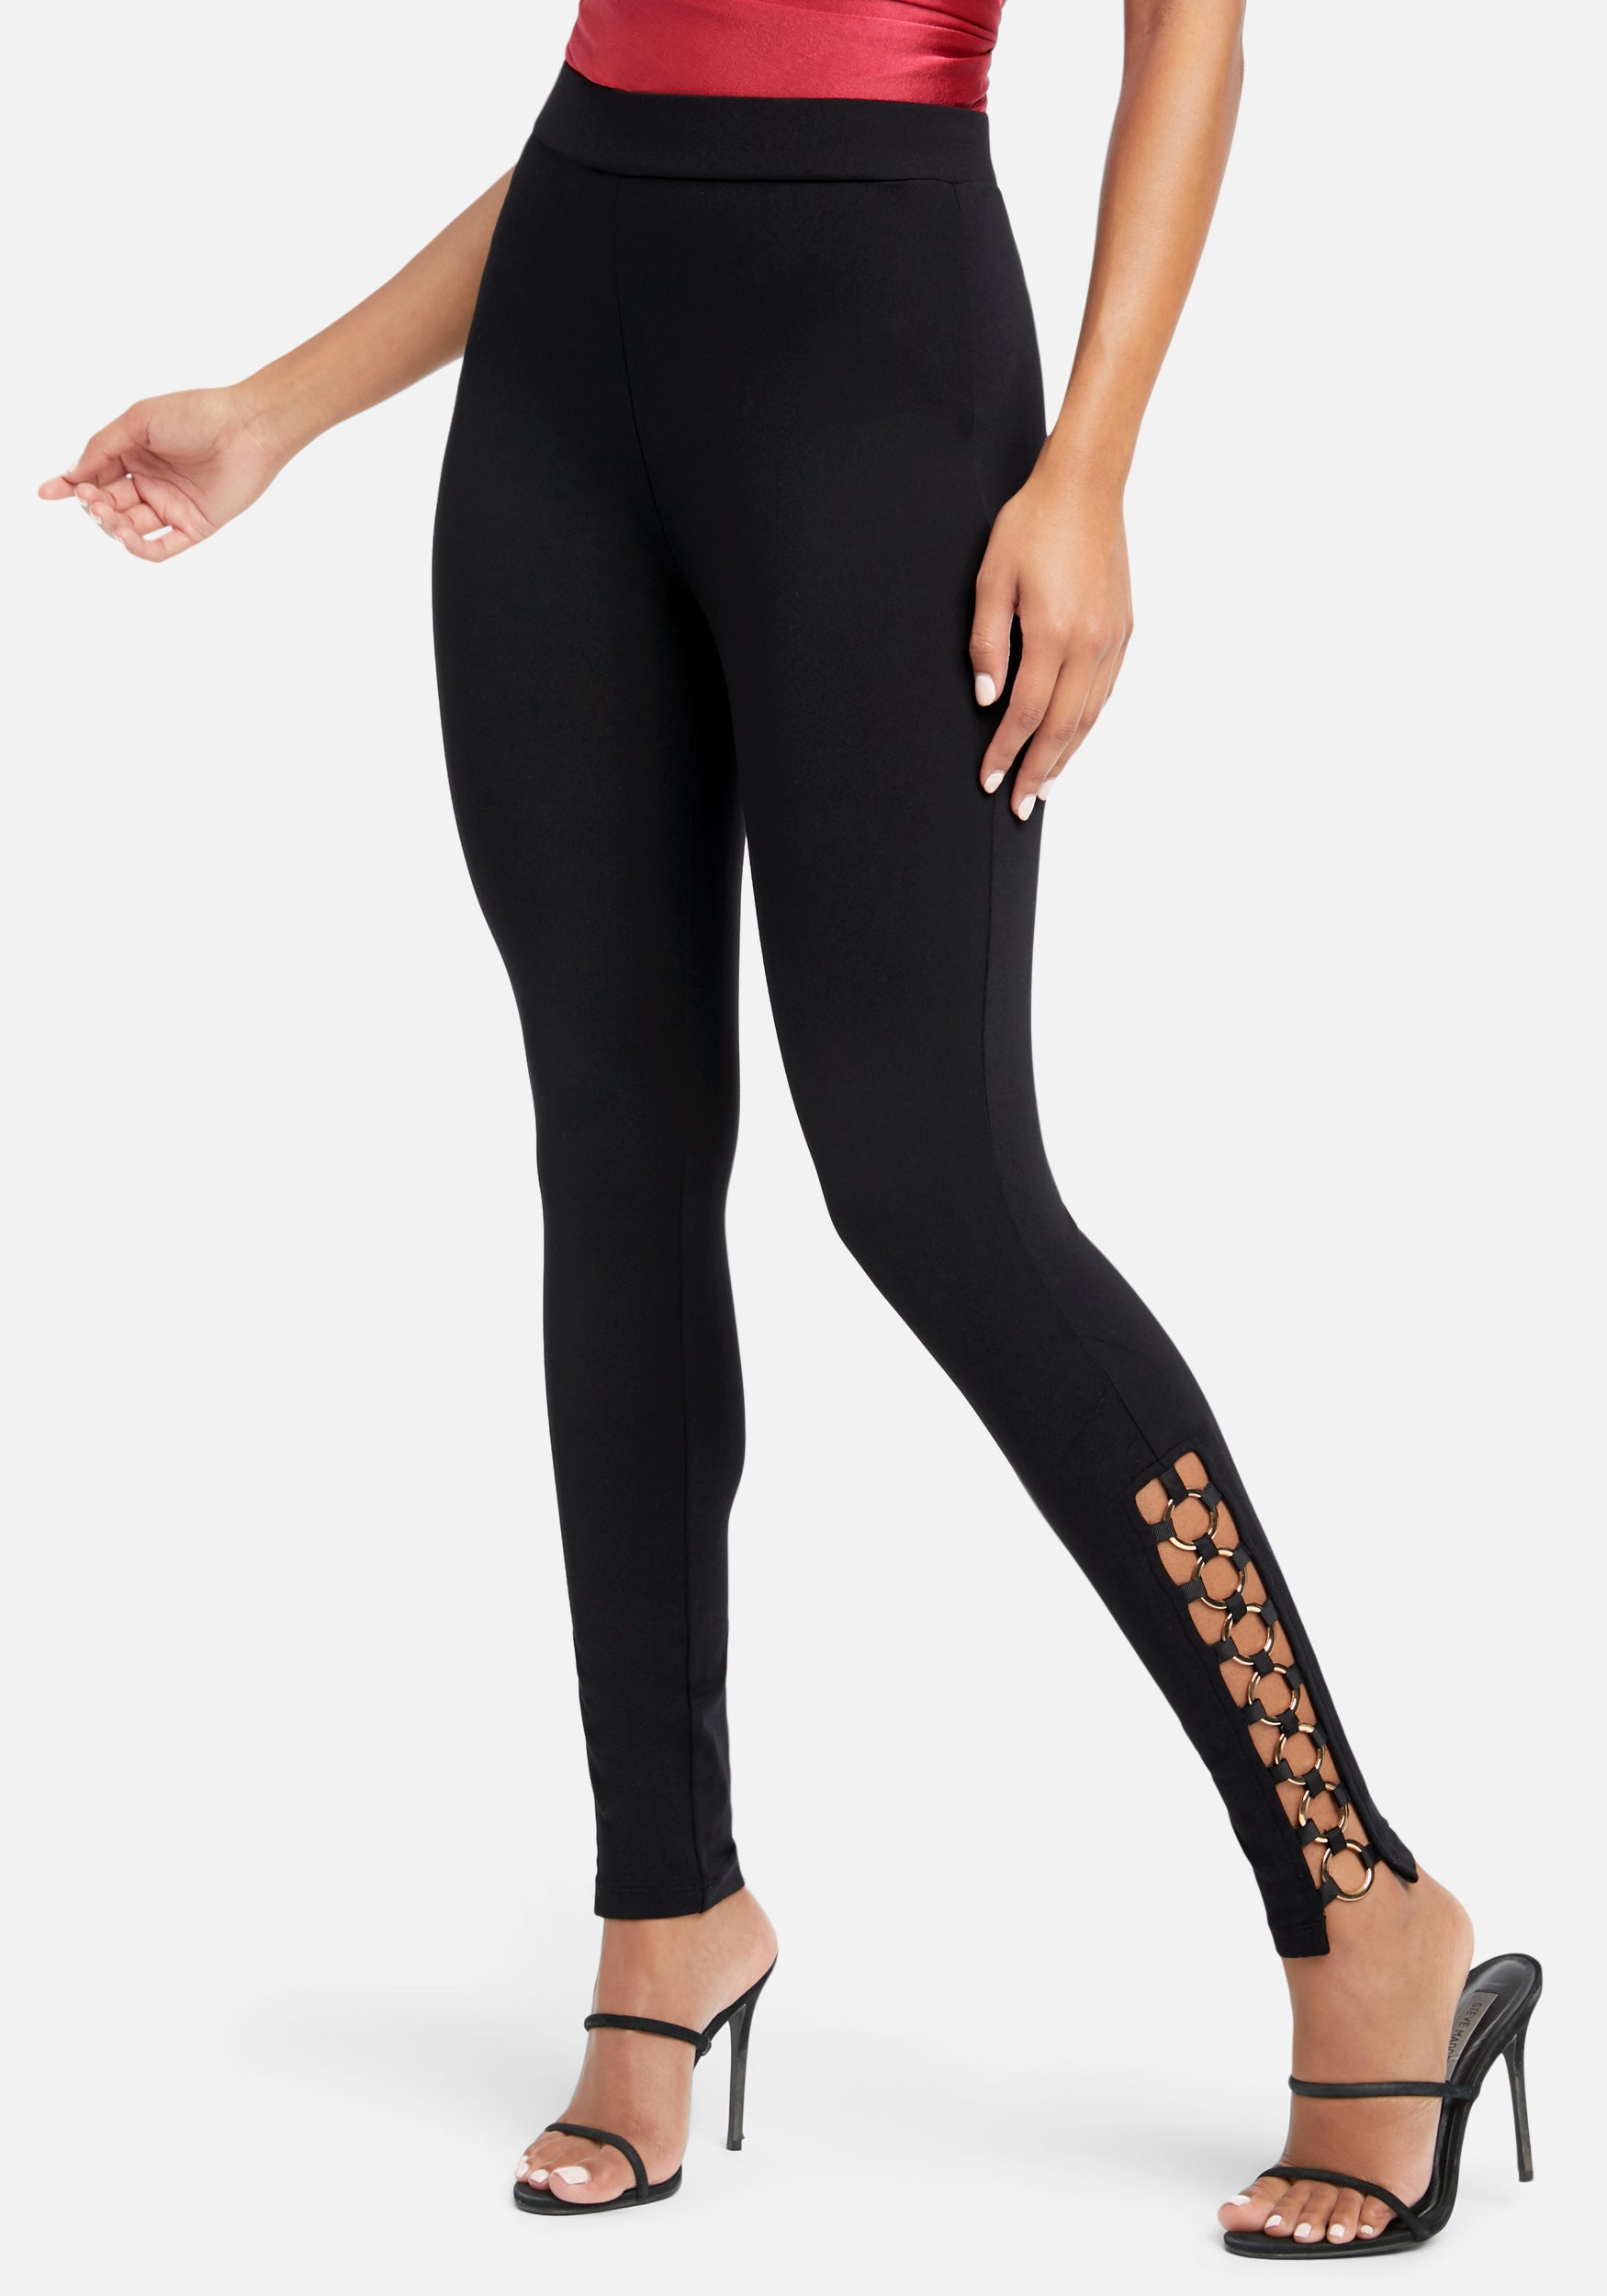 Bebe Women's Ankle Detail Legging, Size XXS in Black Metal/Spandex/Nylon